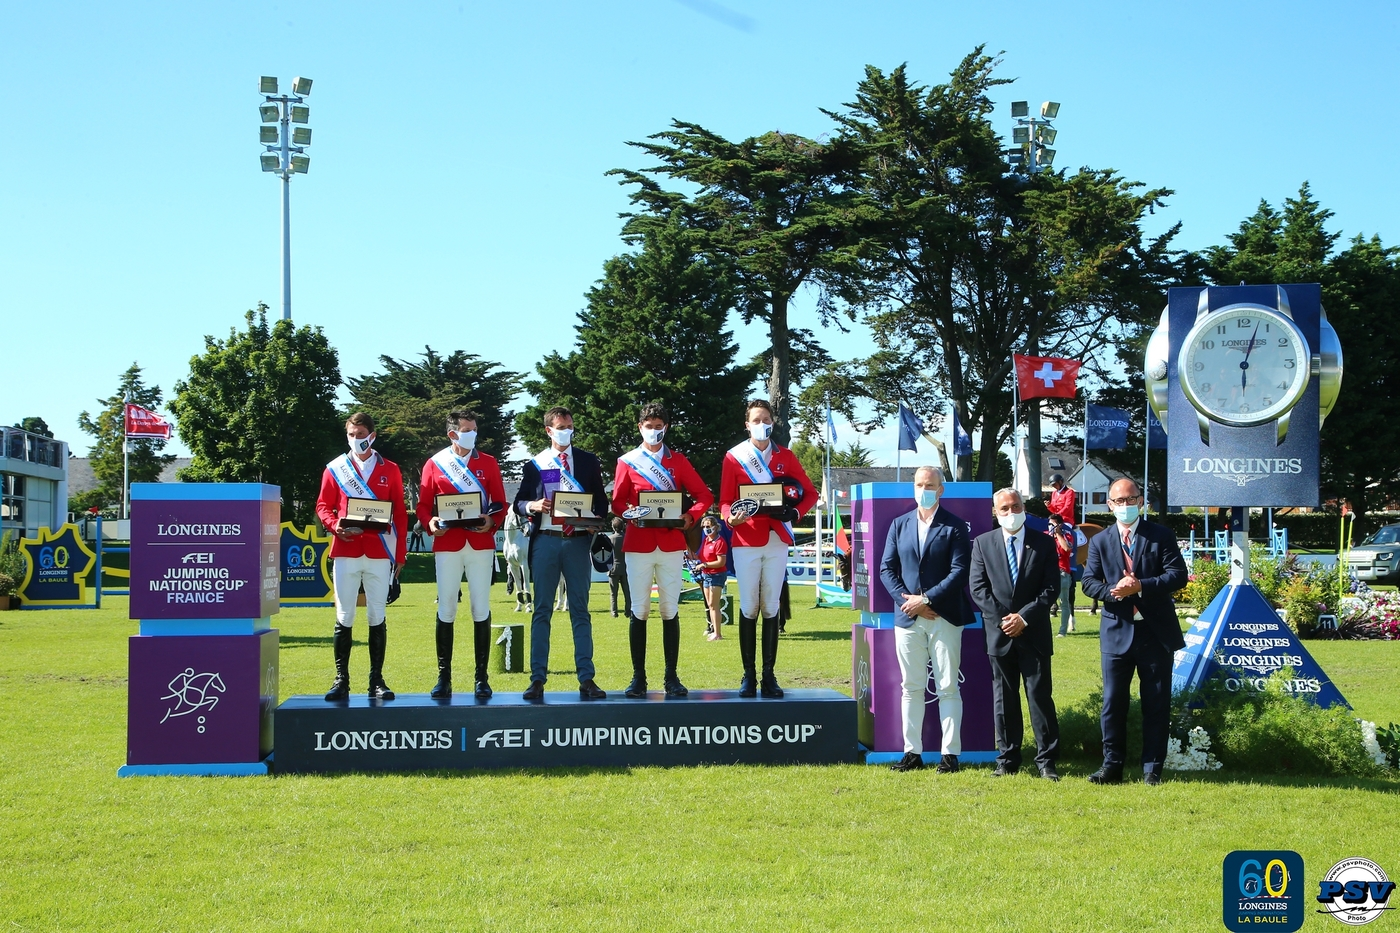 Longines Show Jumping Event: Team Switzerland claims victory to mark the 60th anniversary of the Longines Jumping International of La Baule 2